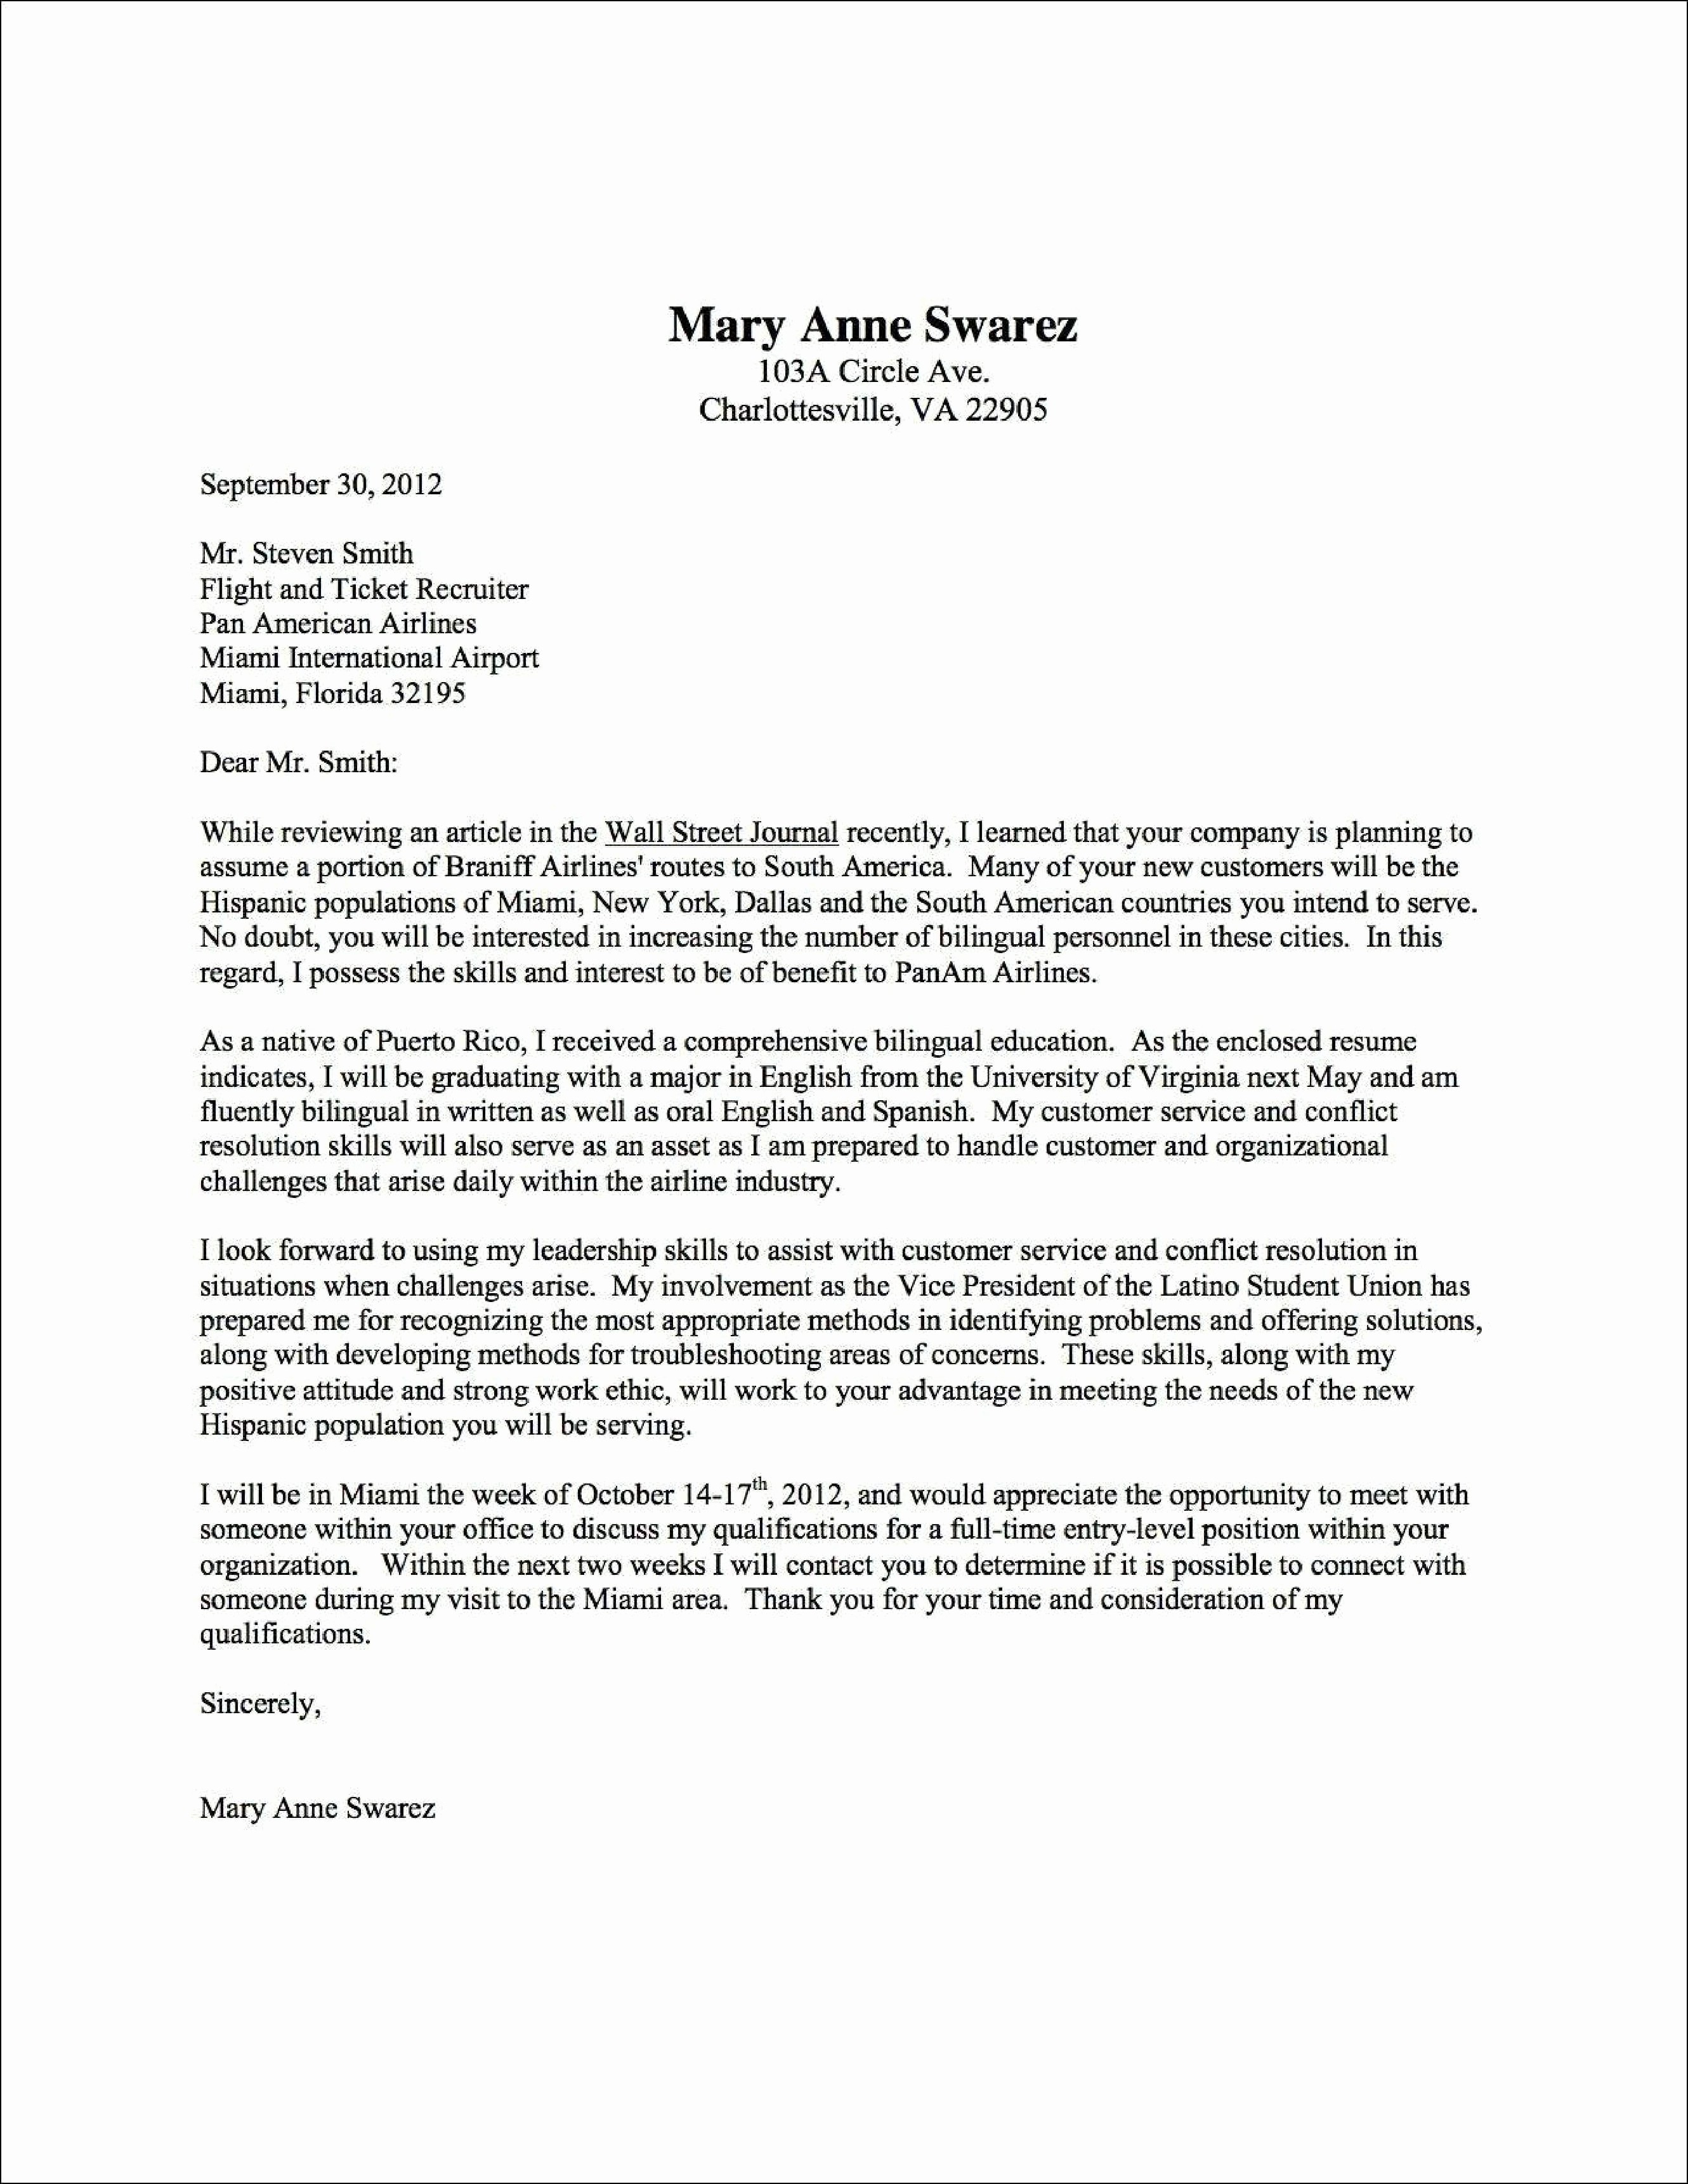 Resume and Cover Letter format Lovely 23 Cover Letter Structure Cover Letter Resume